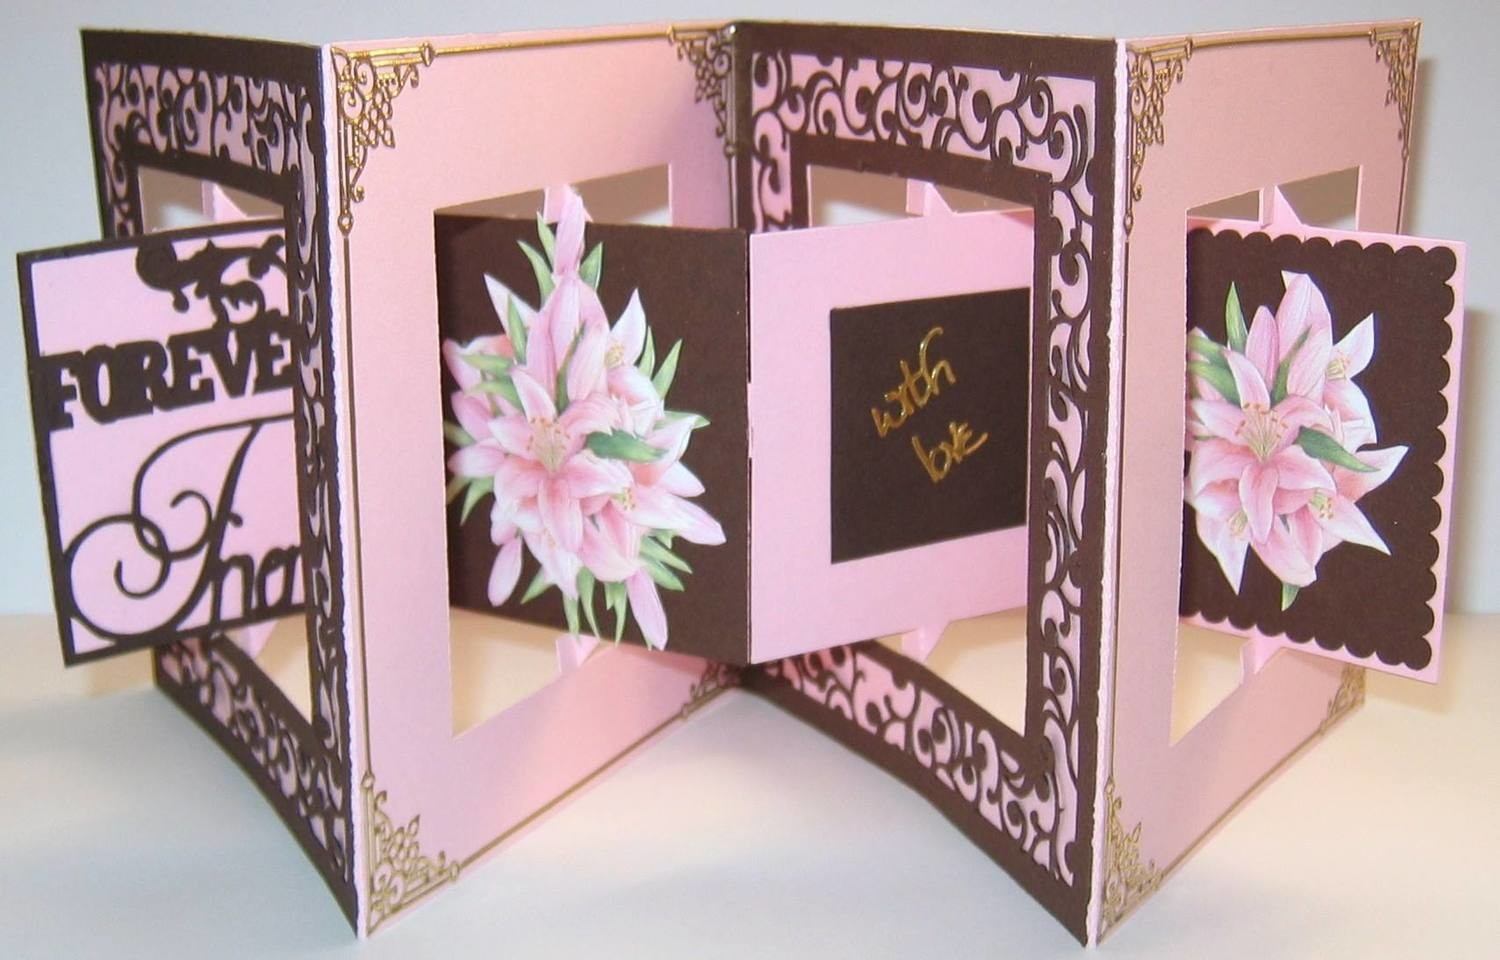 Accordian Square Card Forever Friends -  Studio file A4 12x12 and A3 see product description